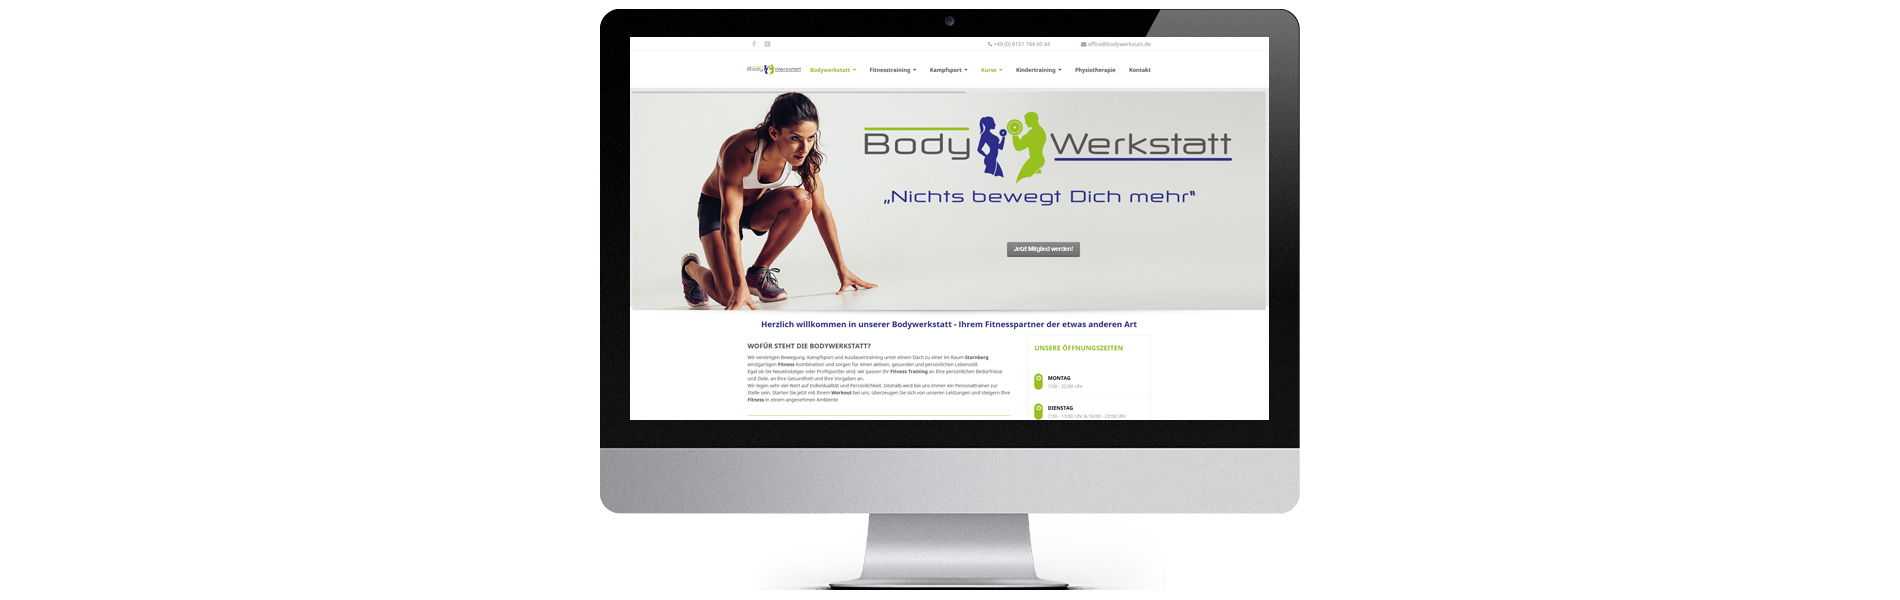 Projekt: Website Bodywerkstatt Fitnessstudio